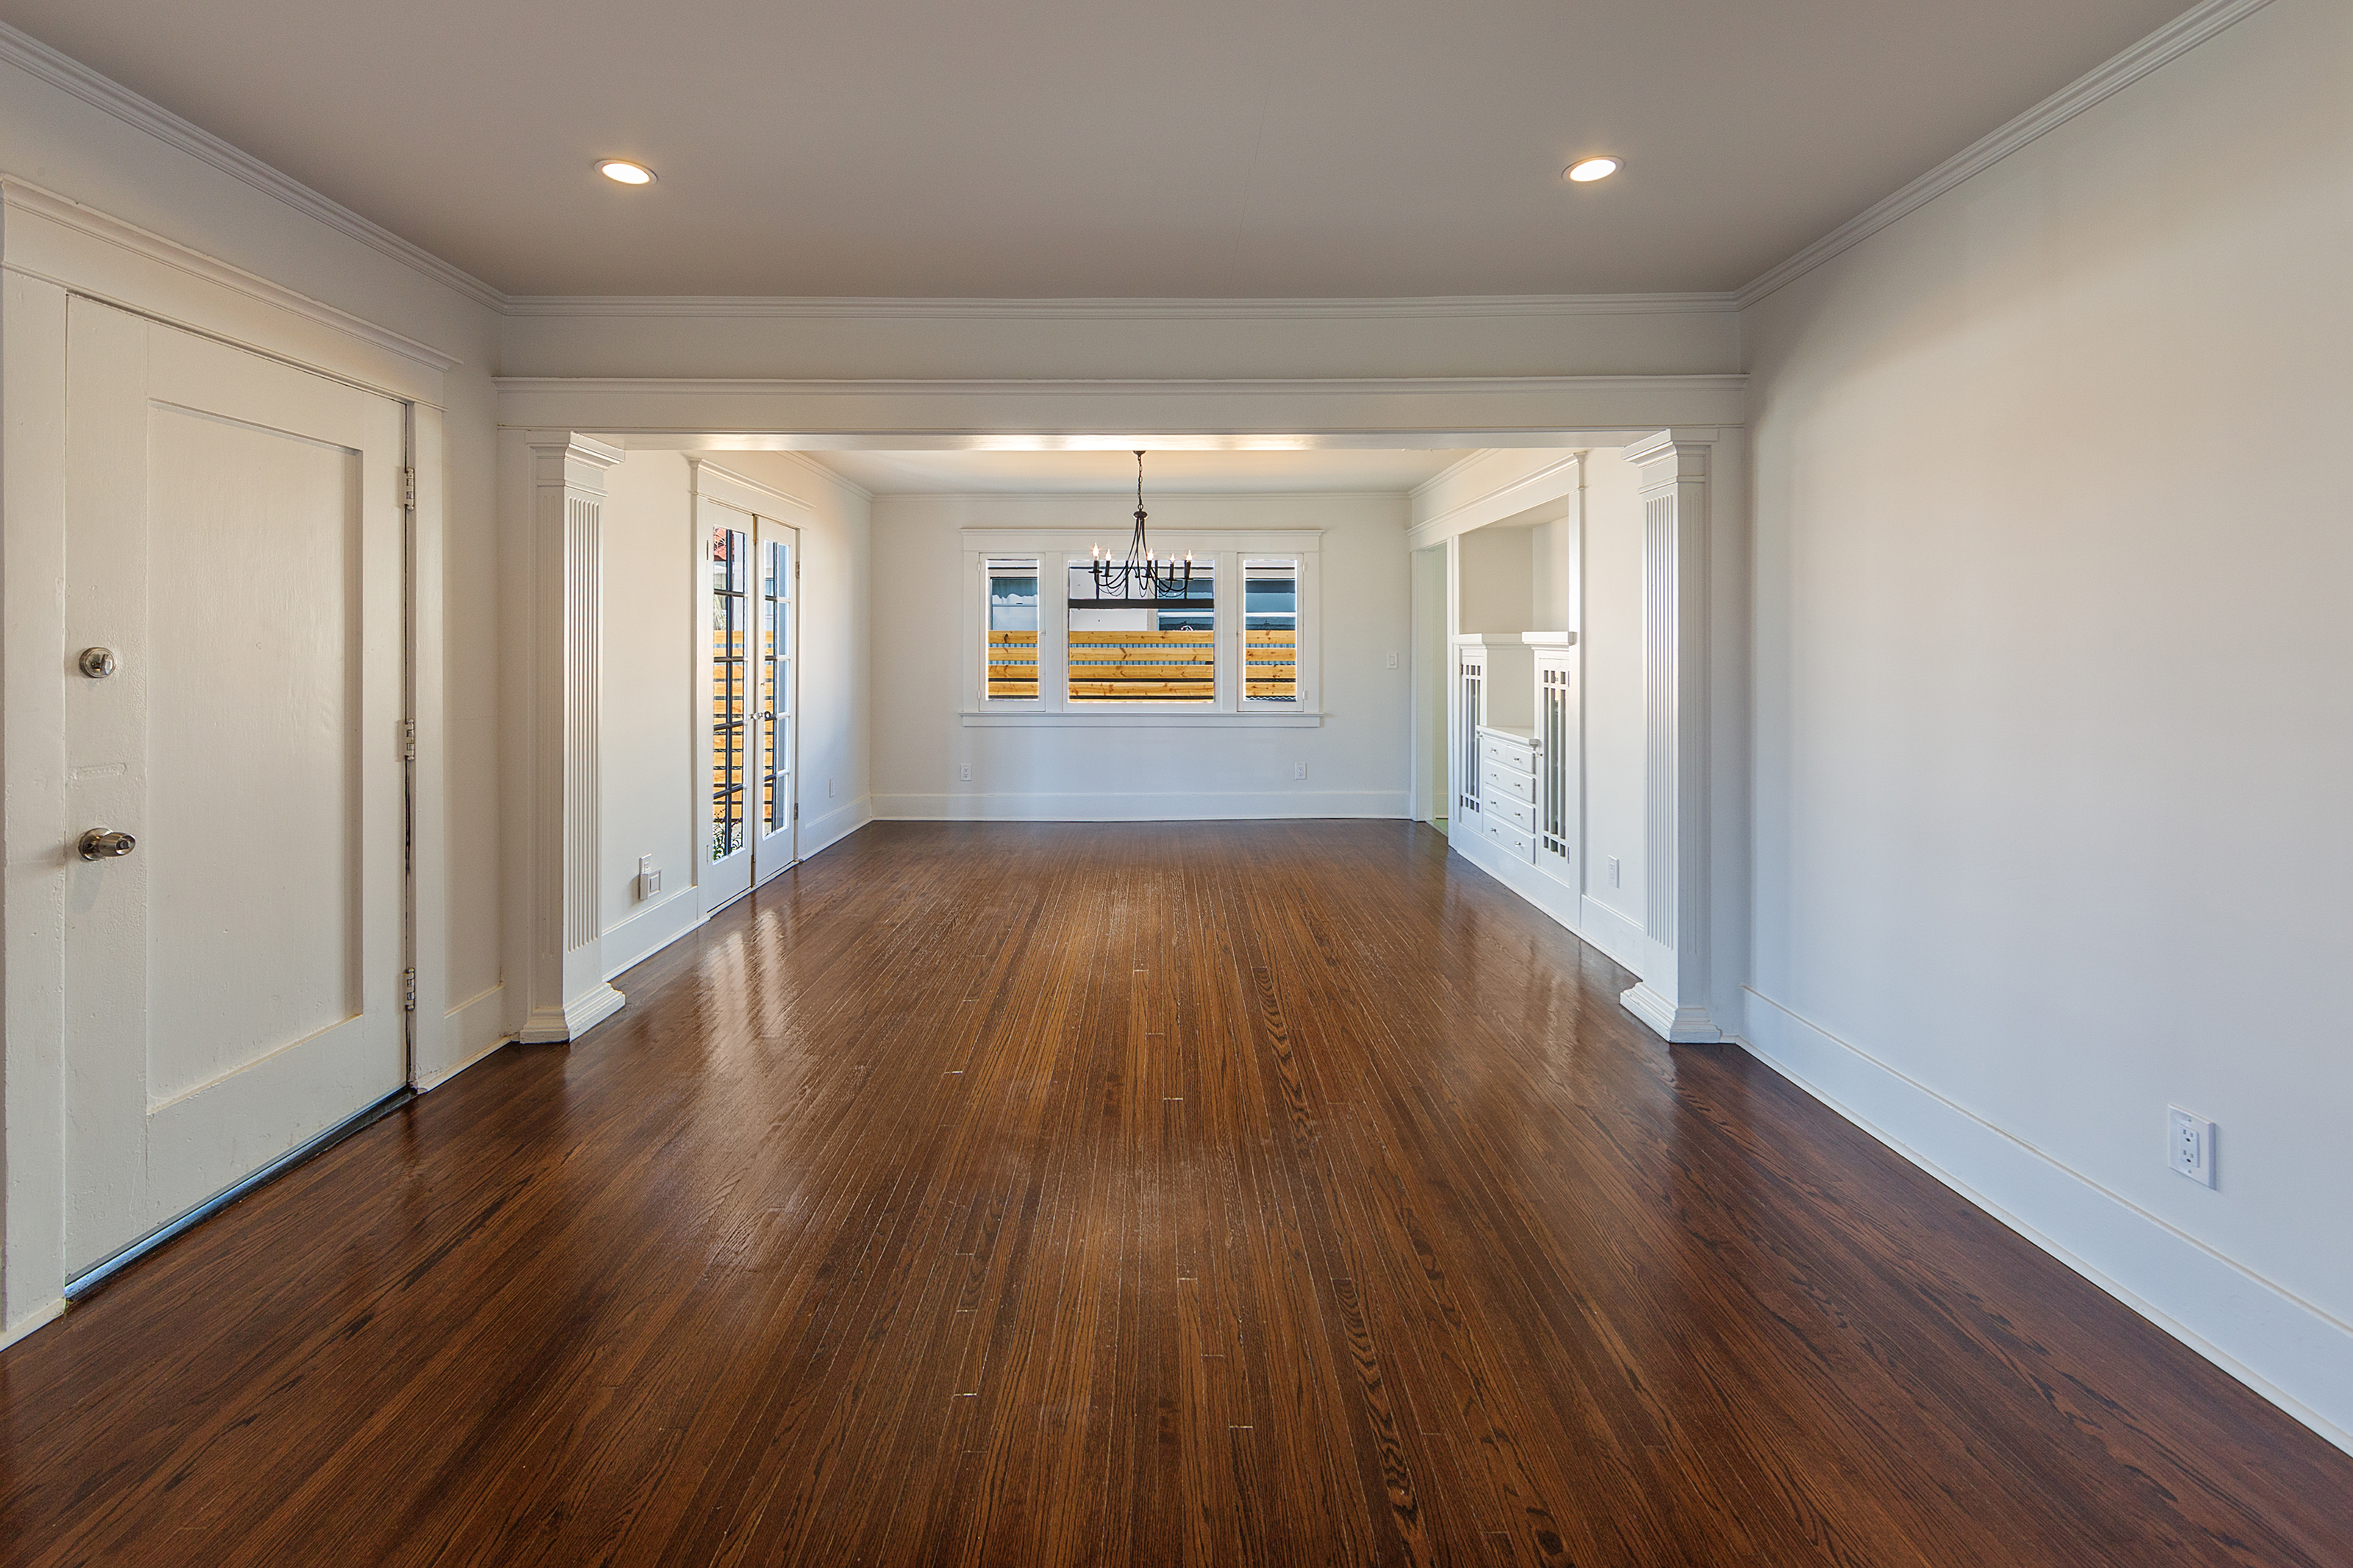 East hollywood homes for sale - But In The Living Room Dining Room And Bedrooms The Original Oak Hardwood Floors And Built Ins Are Still Intact And They Bring The Charm